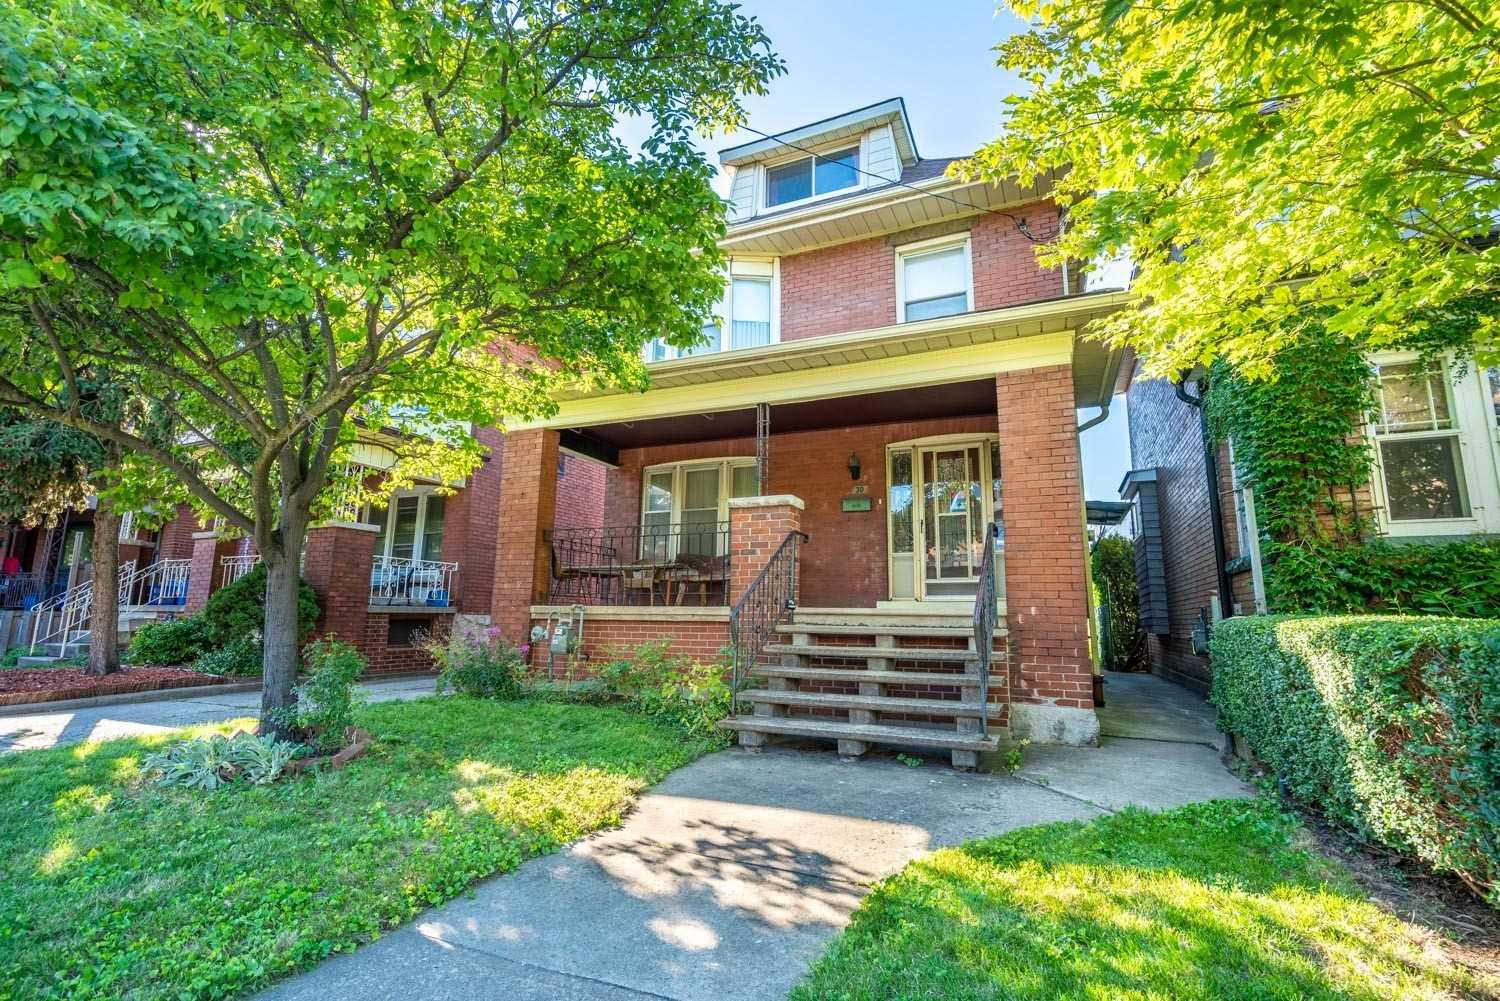 Detached house For Sale In Hamilton